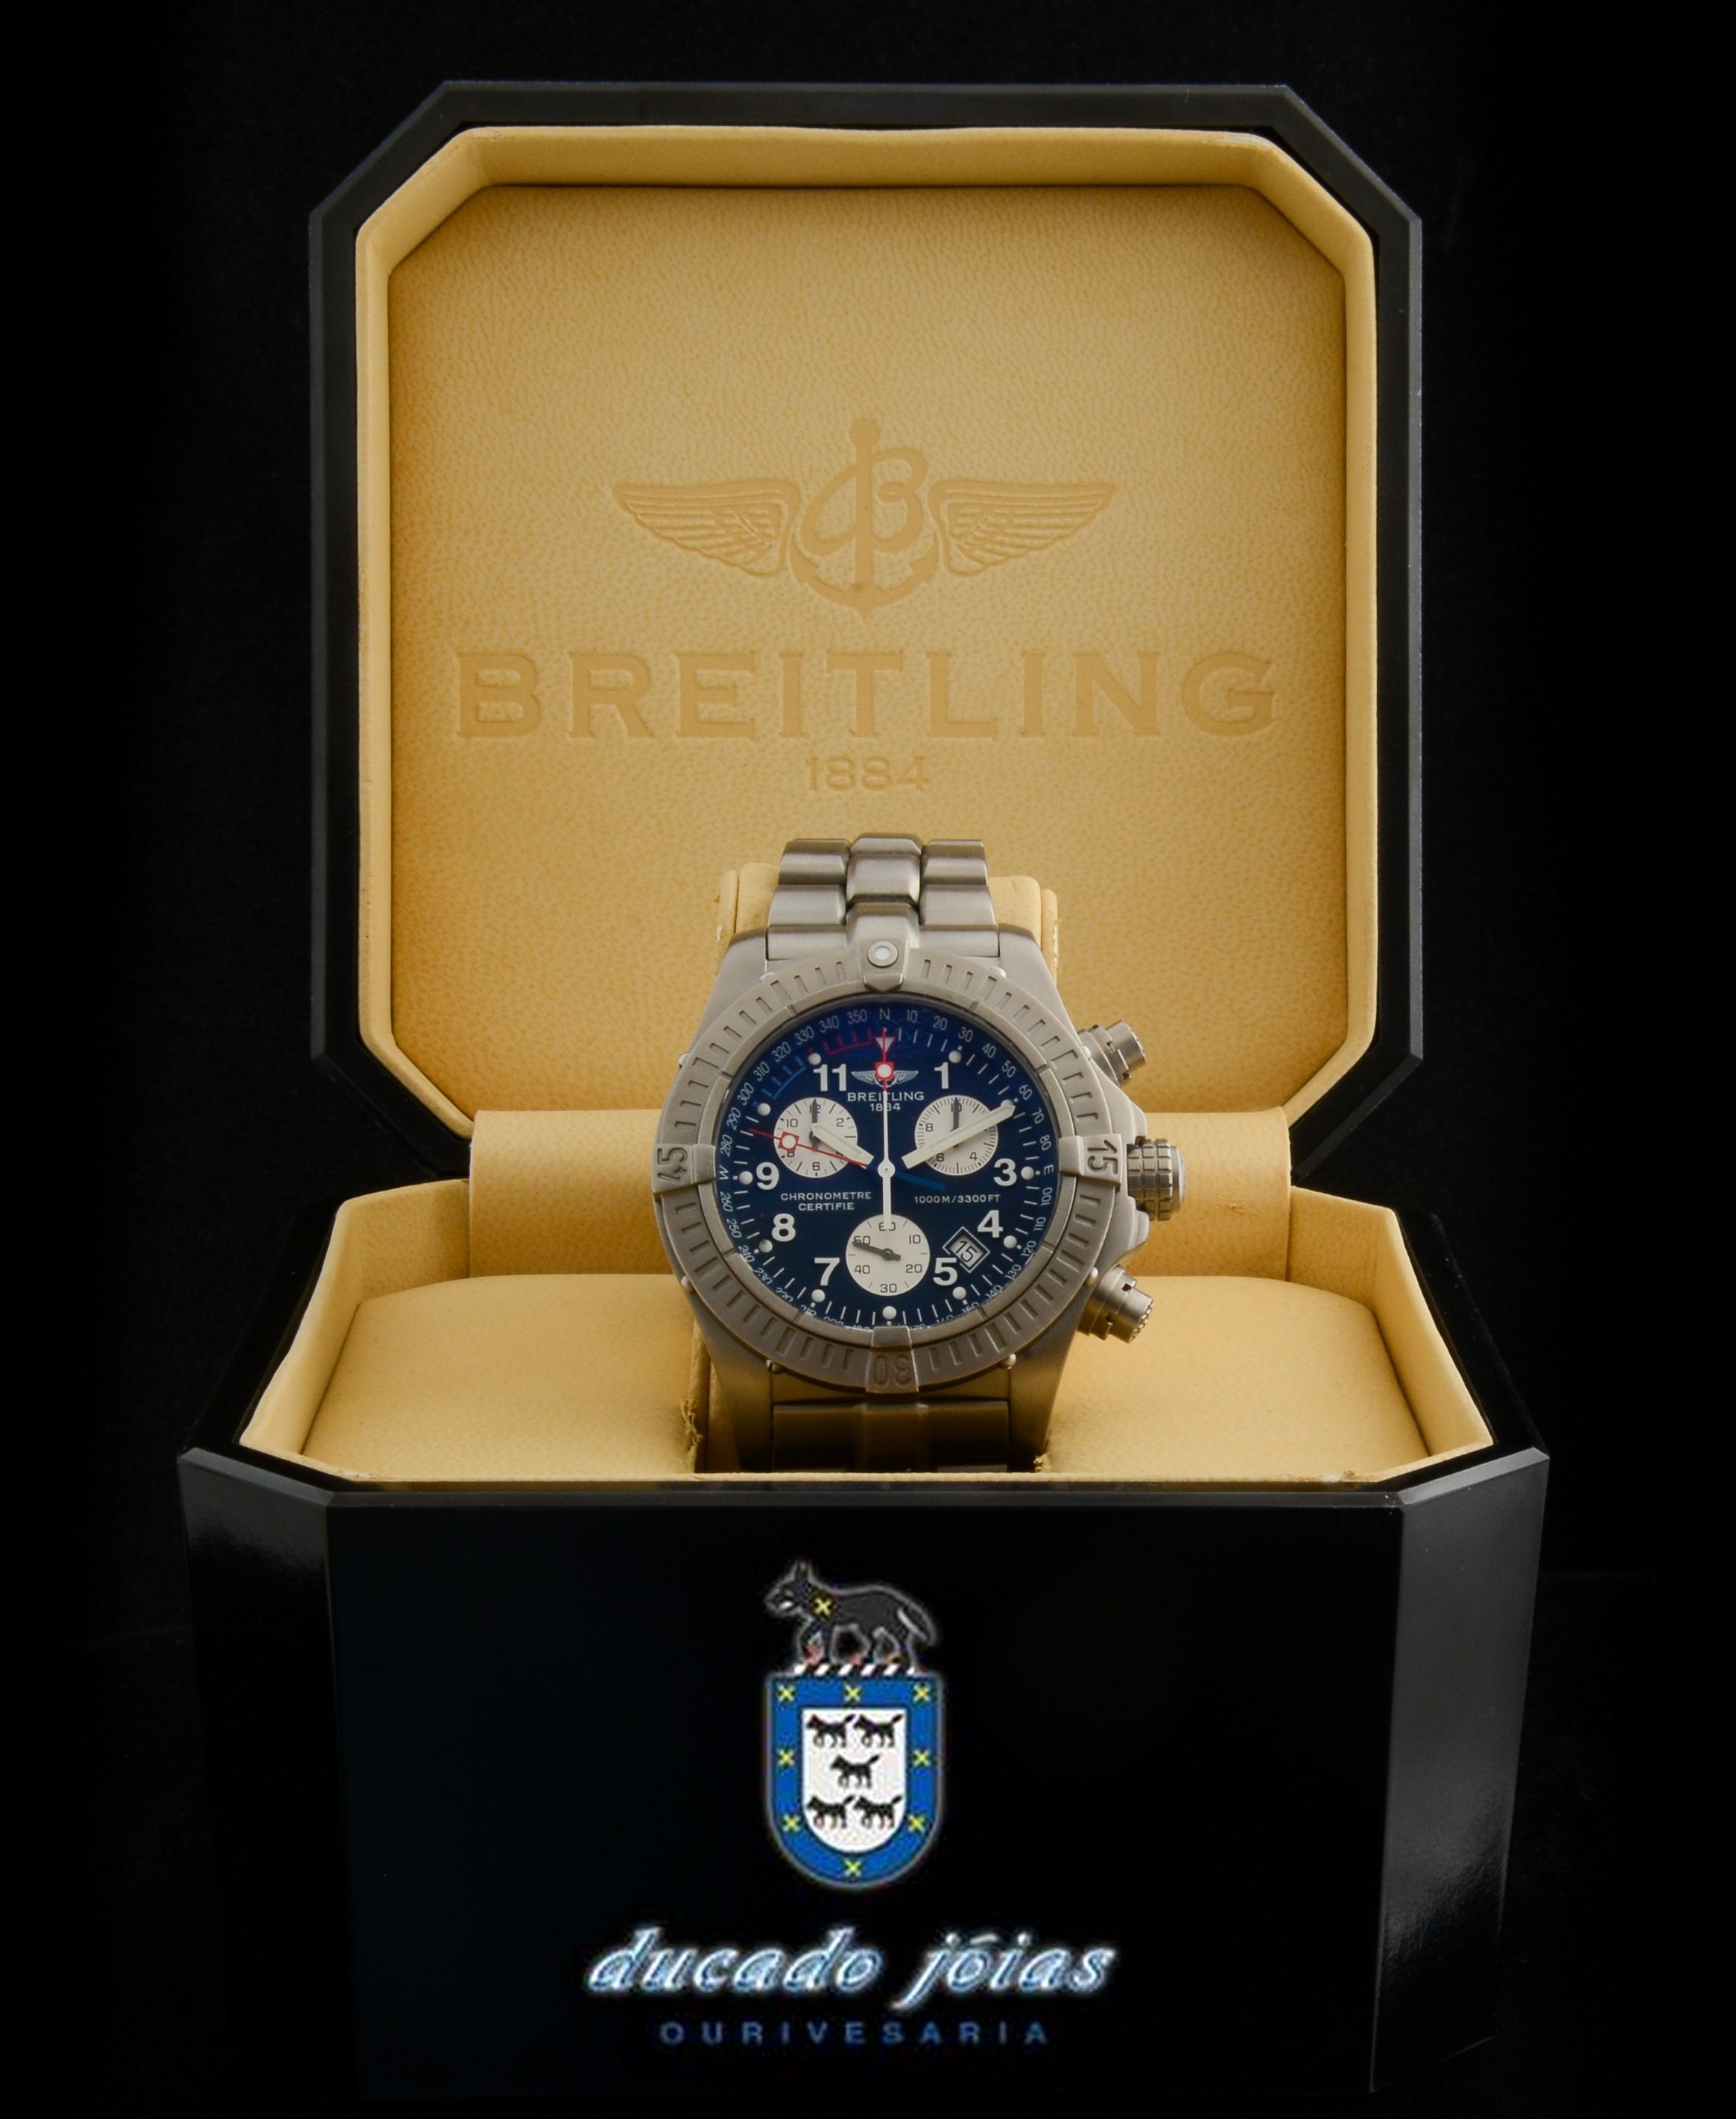 b3963d04d8a Pre-owned Breitling avenger M1 chronograph in Titanium. With box and  papers. Shop online